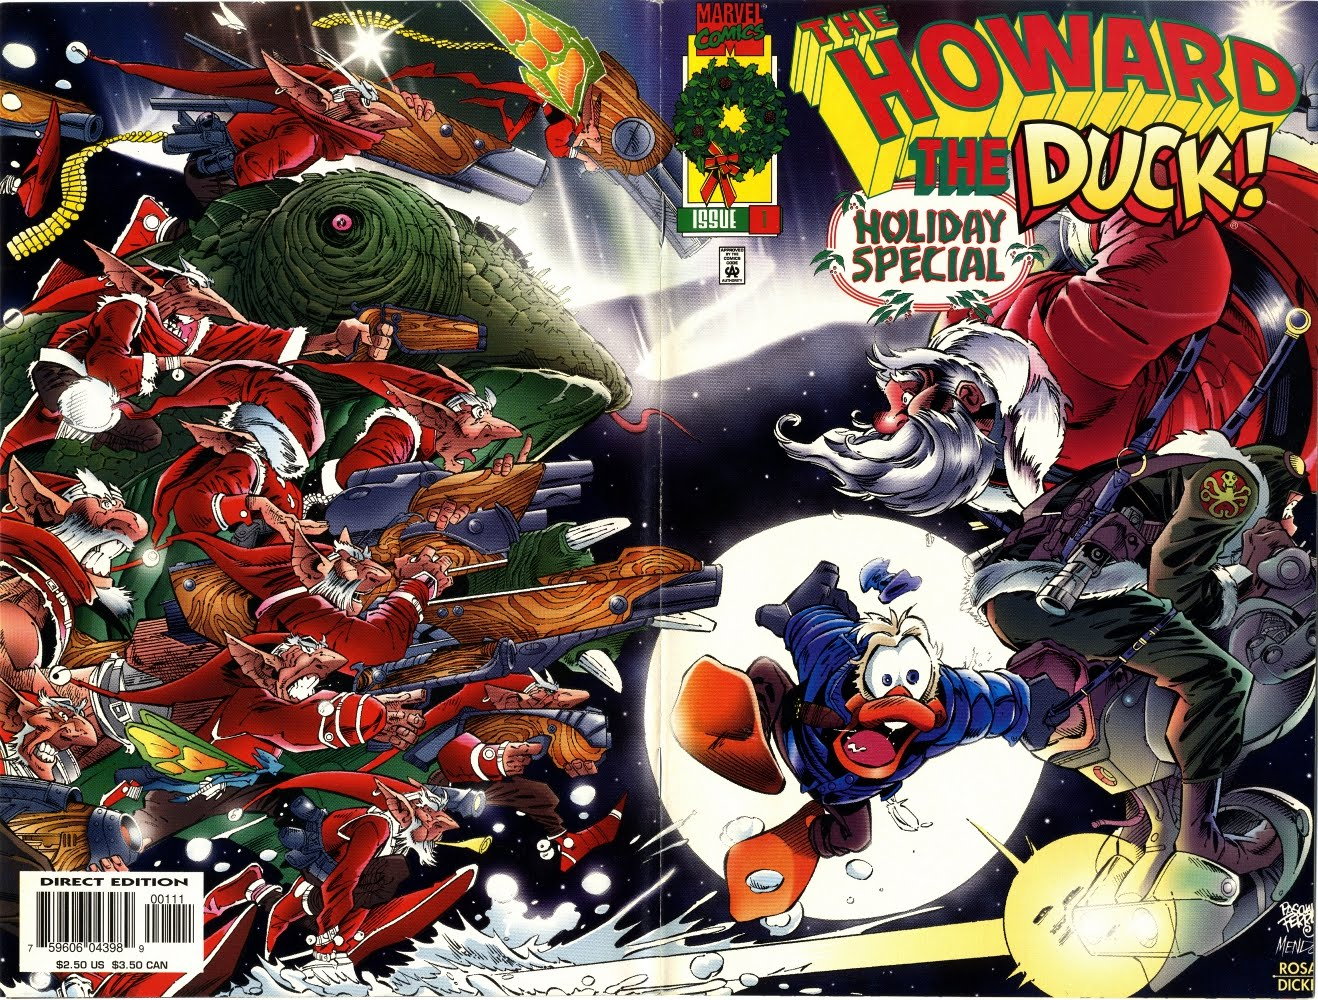 Howard The Duck: Holiday Special 0001 Wrap Around